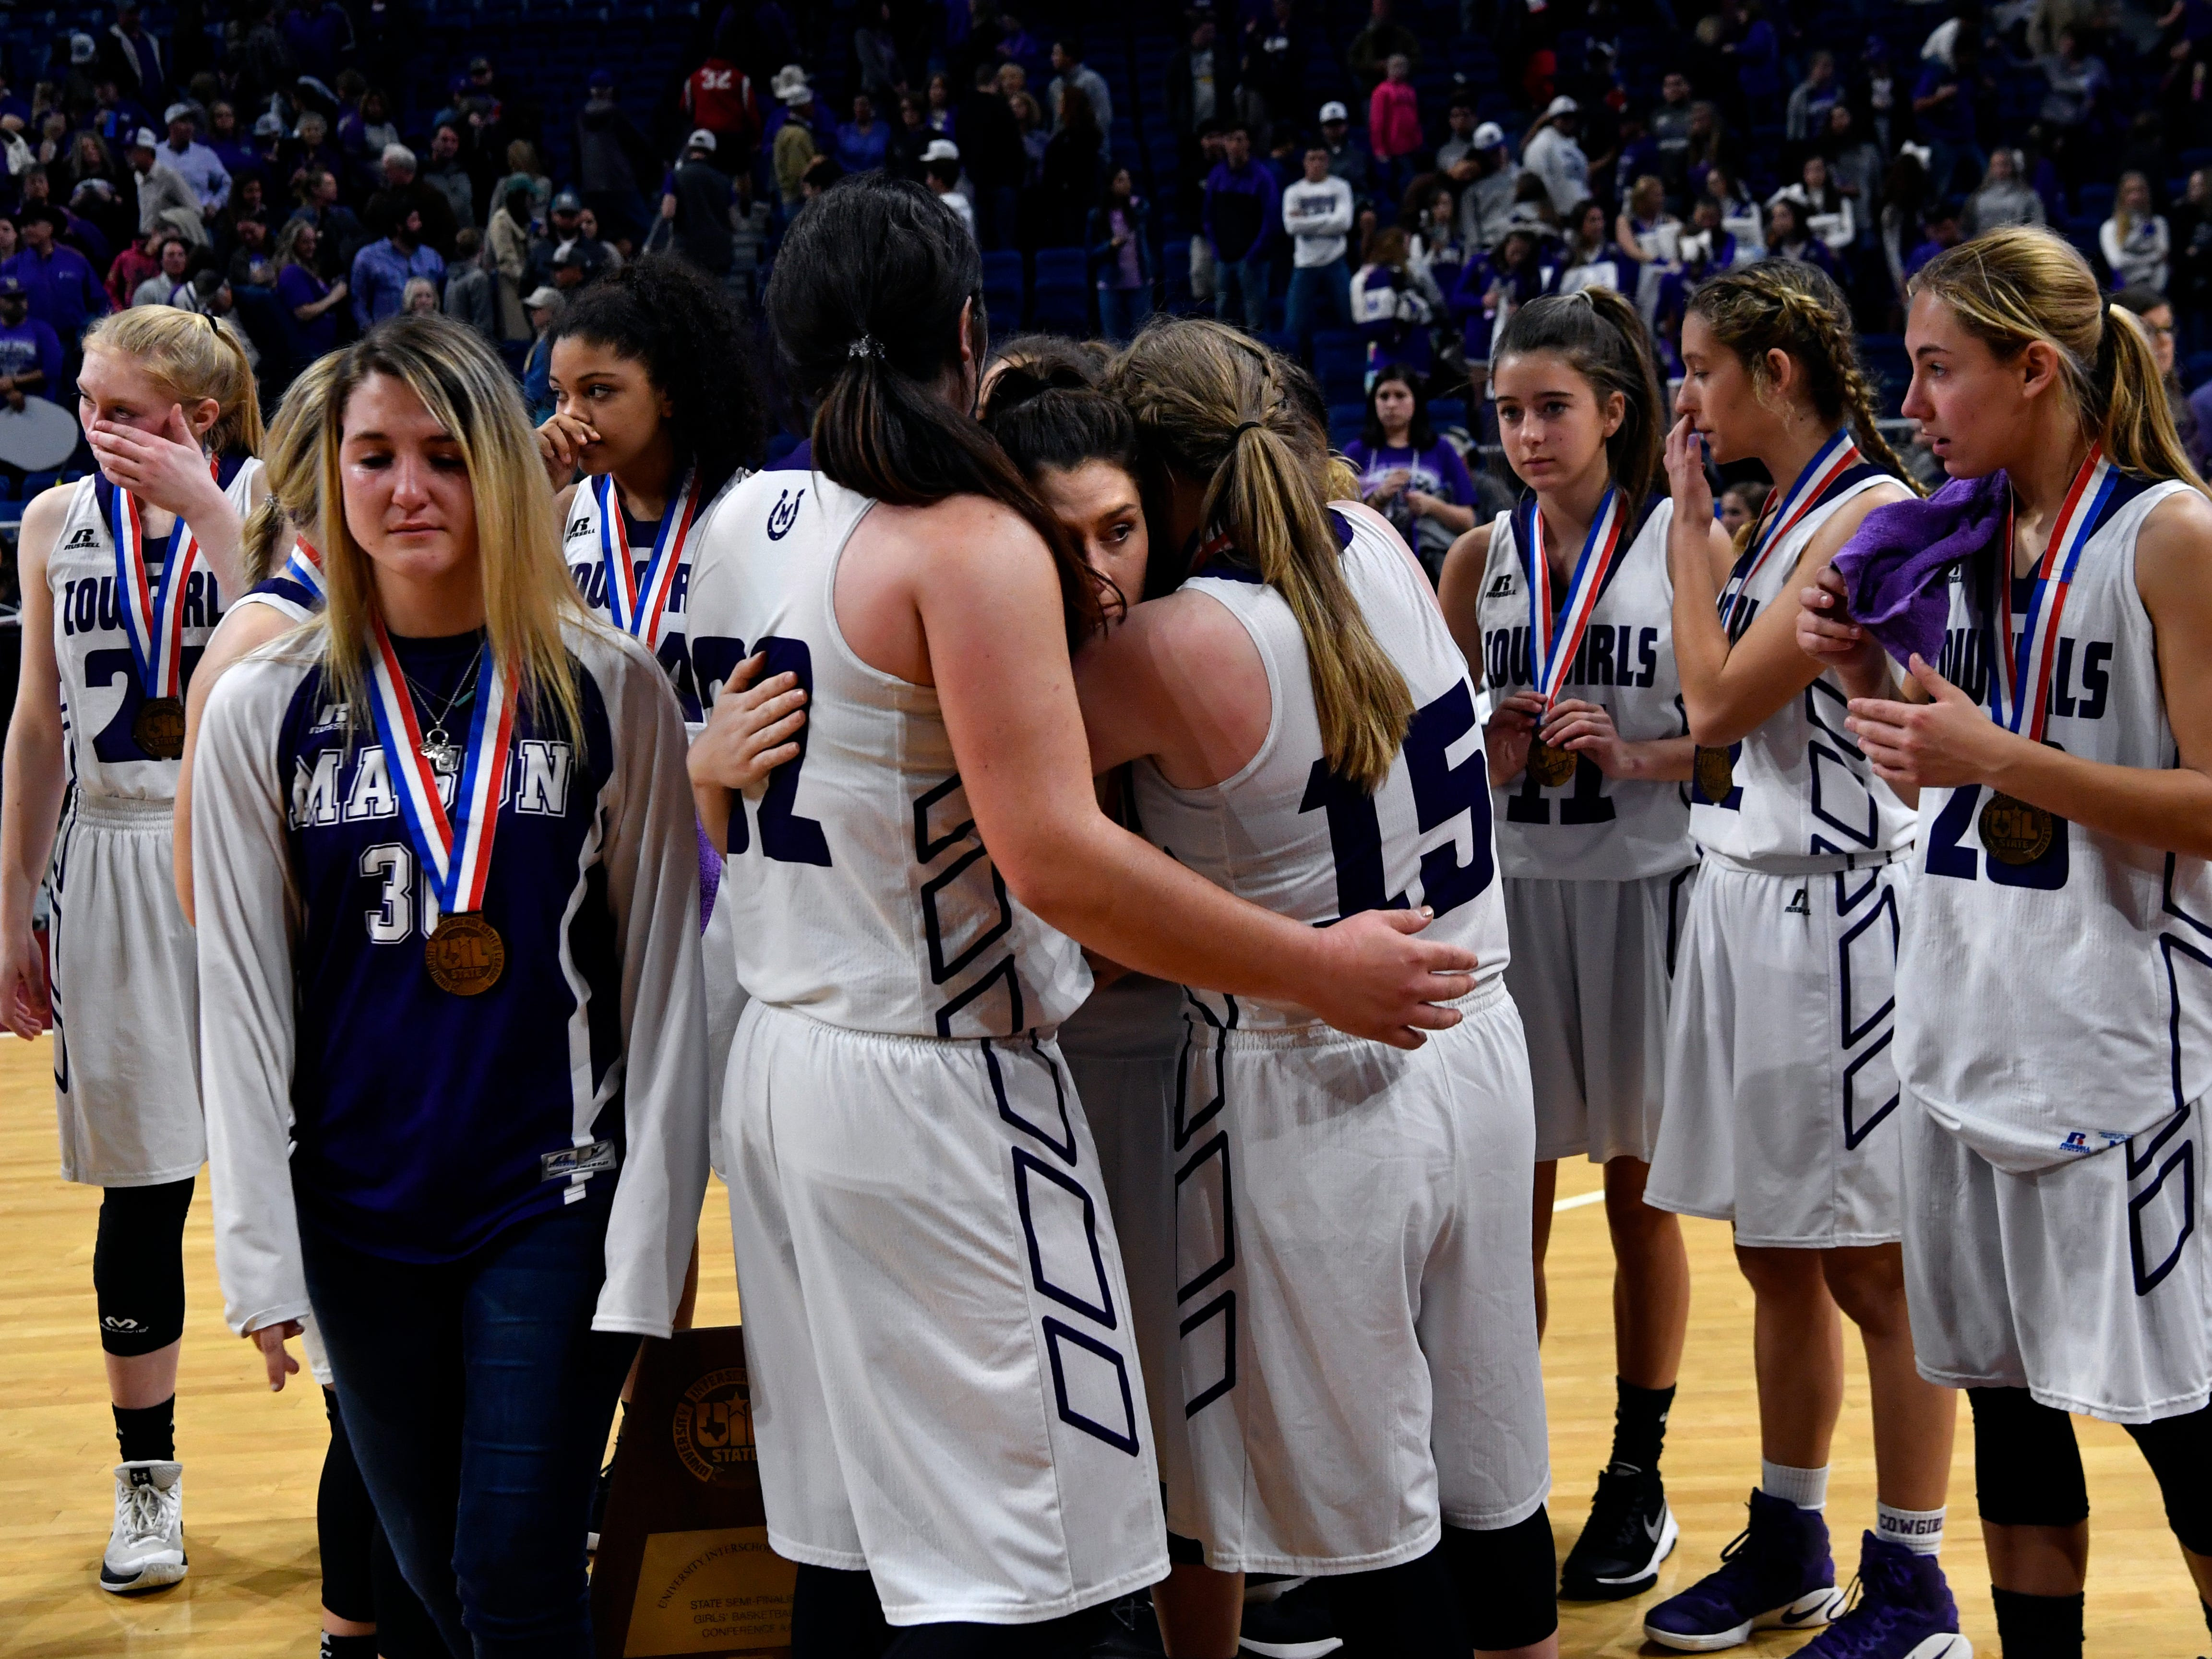 The Mason Cowgirls console each other after losing to Grapeland in Friday's UIL Class 2A girls state basketball semifinal at San Antonio's Alamodome March 1, 2019. Final score was 61-54, Grapeland.